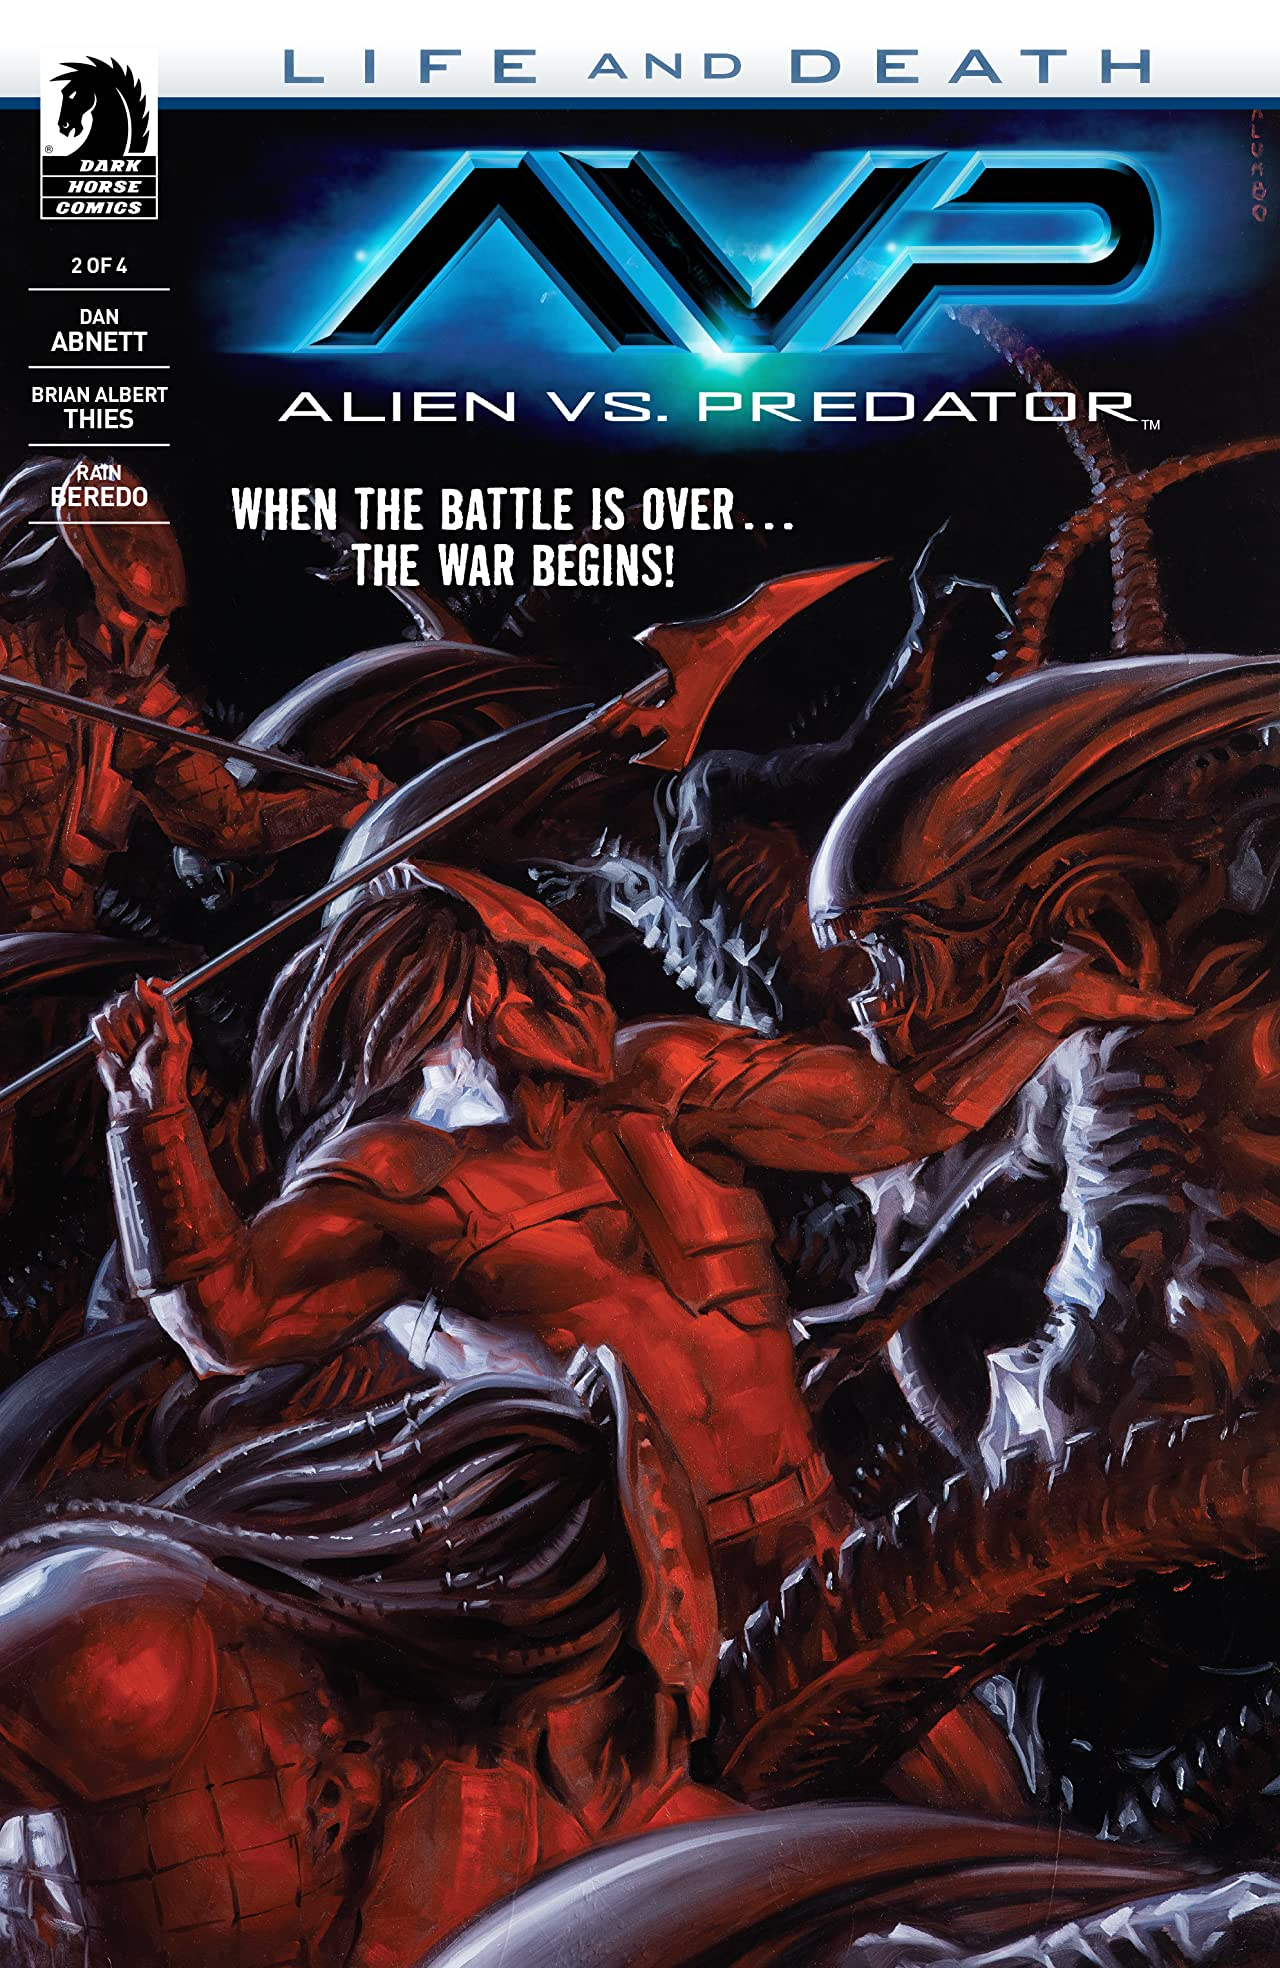 Alien vs. Predator: Life and Death #2